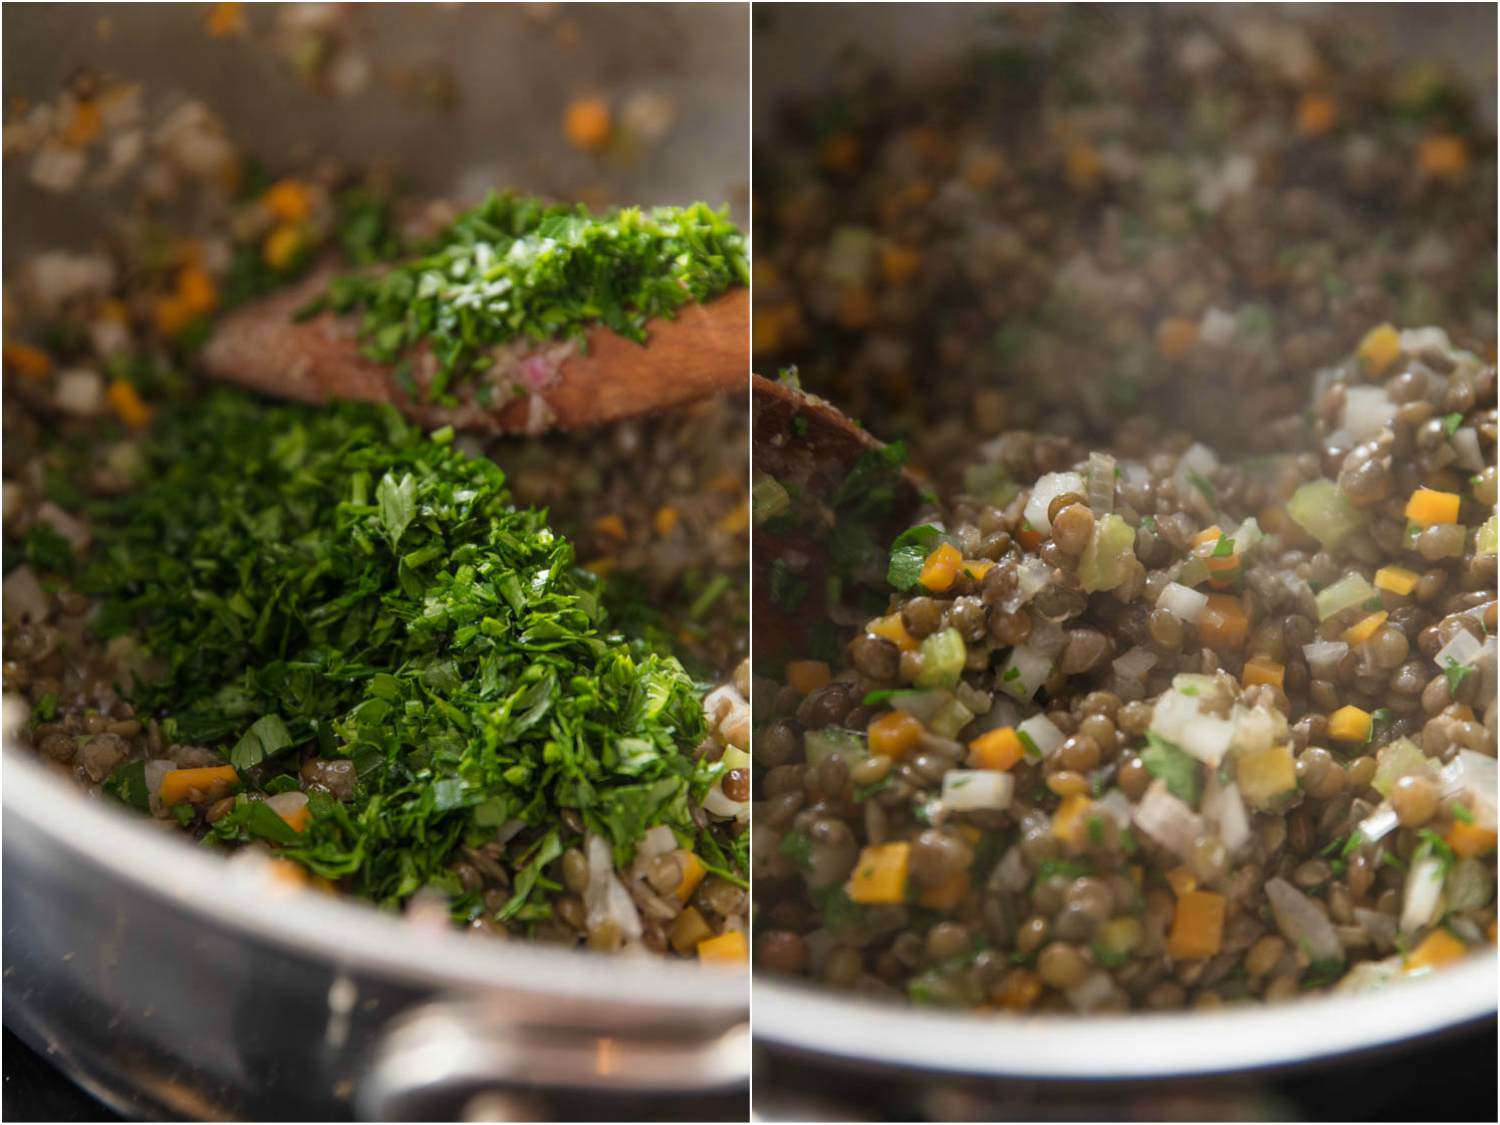 20170922-french-lentils-vicky-wasik-collage3.jpg